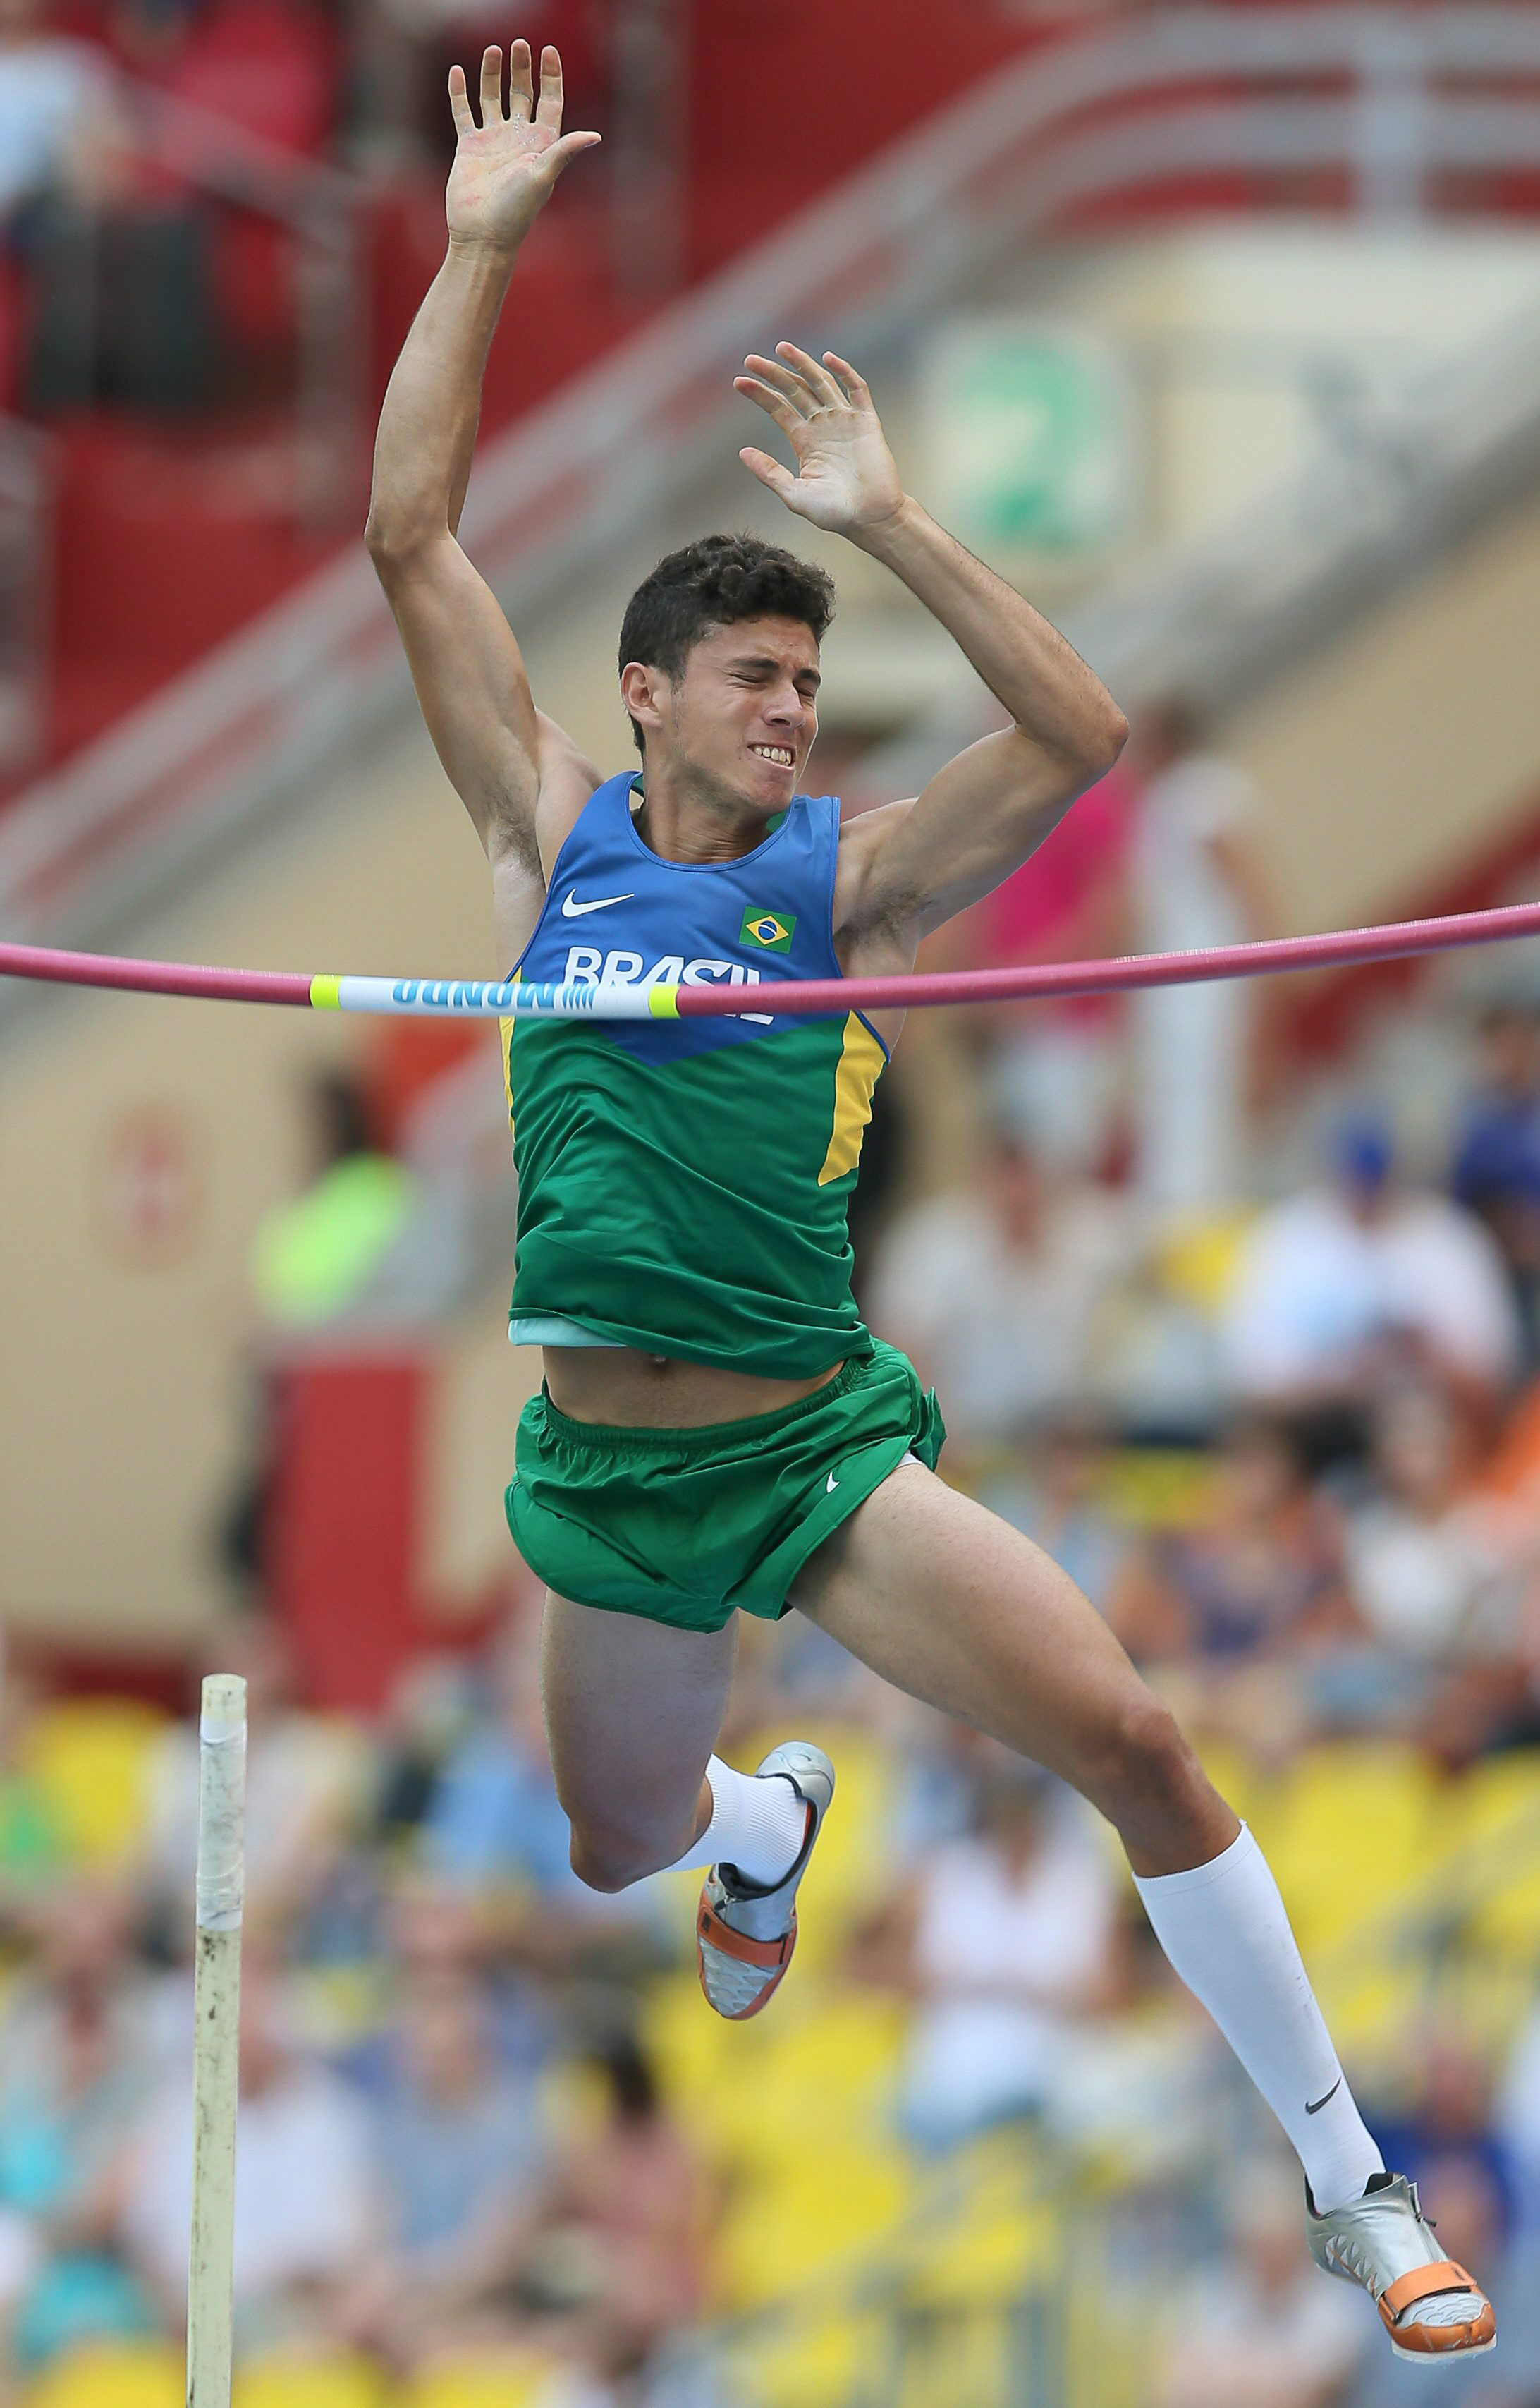 . Moscow (Russian Federation), 10/08/2013.- Brazil's Thiago Braz da Silva competes in the men's Pole Vault qualification at the 14th IAAF World Championships in Moscow, Russia, 10 August 2013. (Moscú, Rusia, Campeonato del Mundo, Mundiales de Atletismo) EFE/EPA/SERGEI ILNITSKY